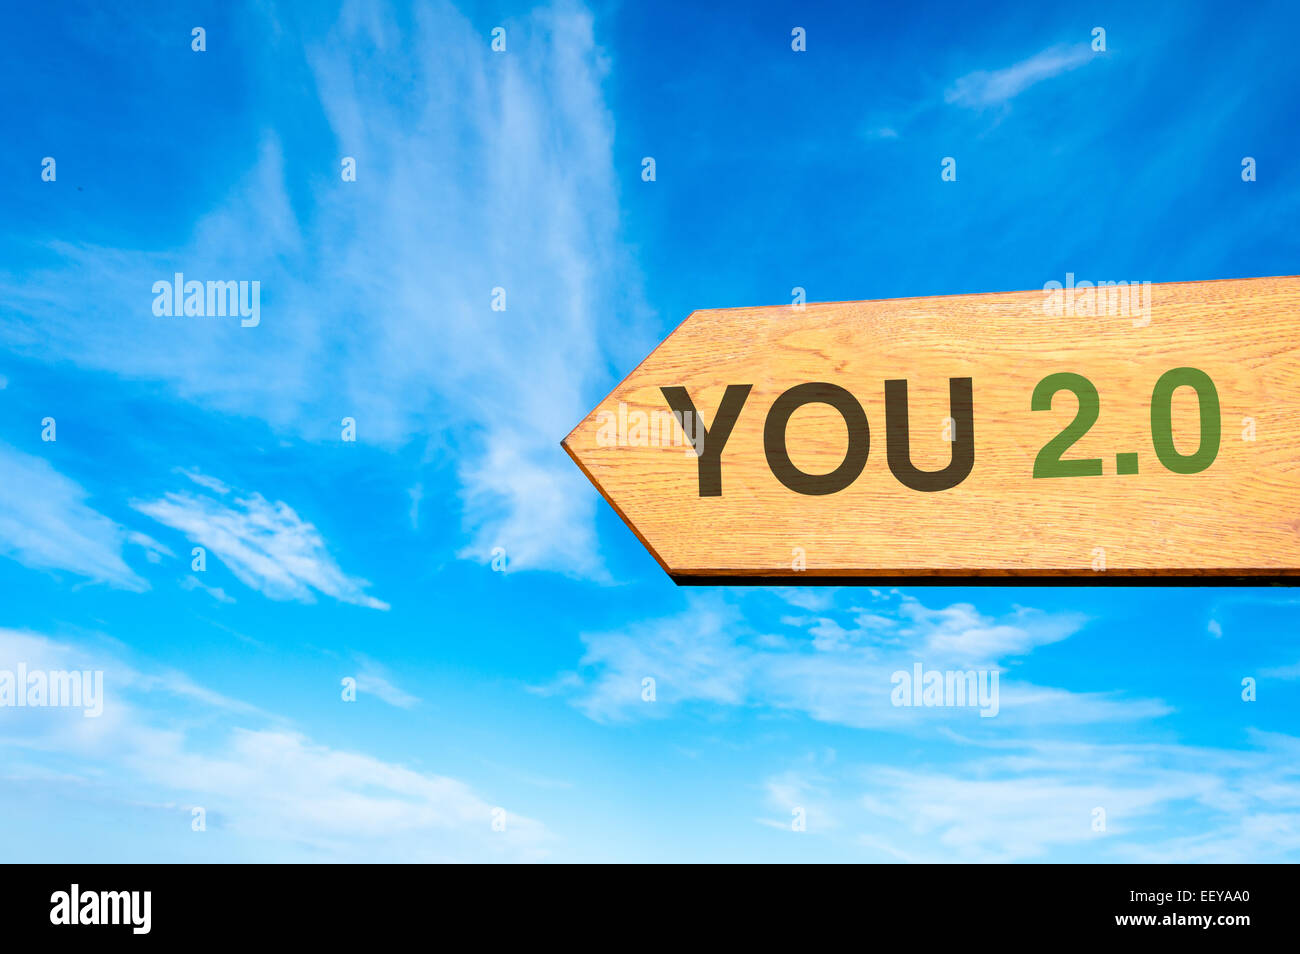 Wood arrow sign against clear blue sky with You 2.0 message, Lifestyle change conceptual image Stock Photo